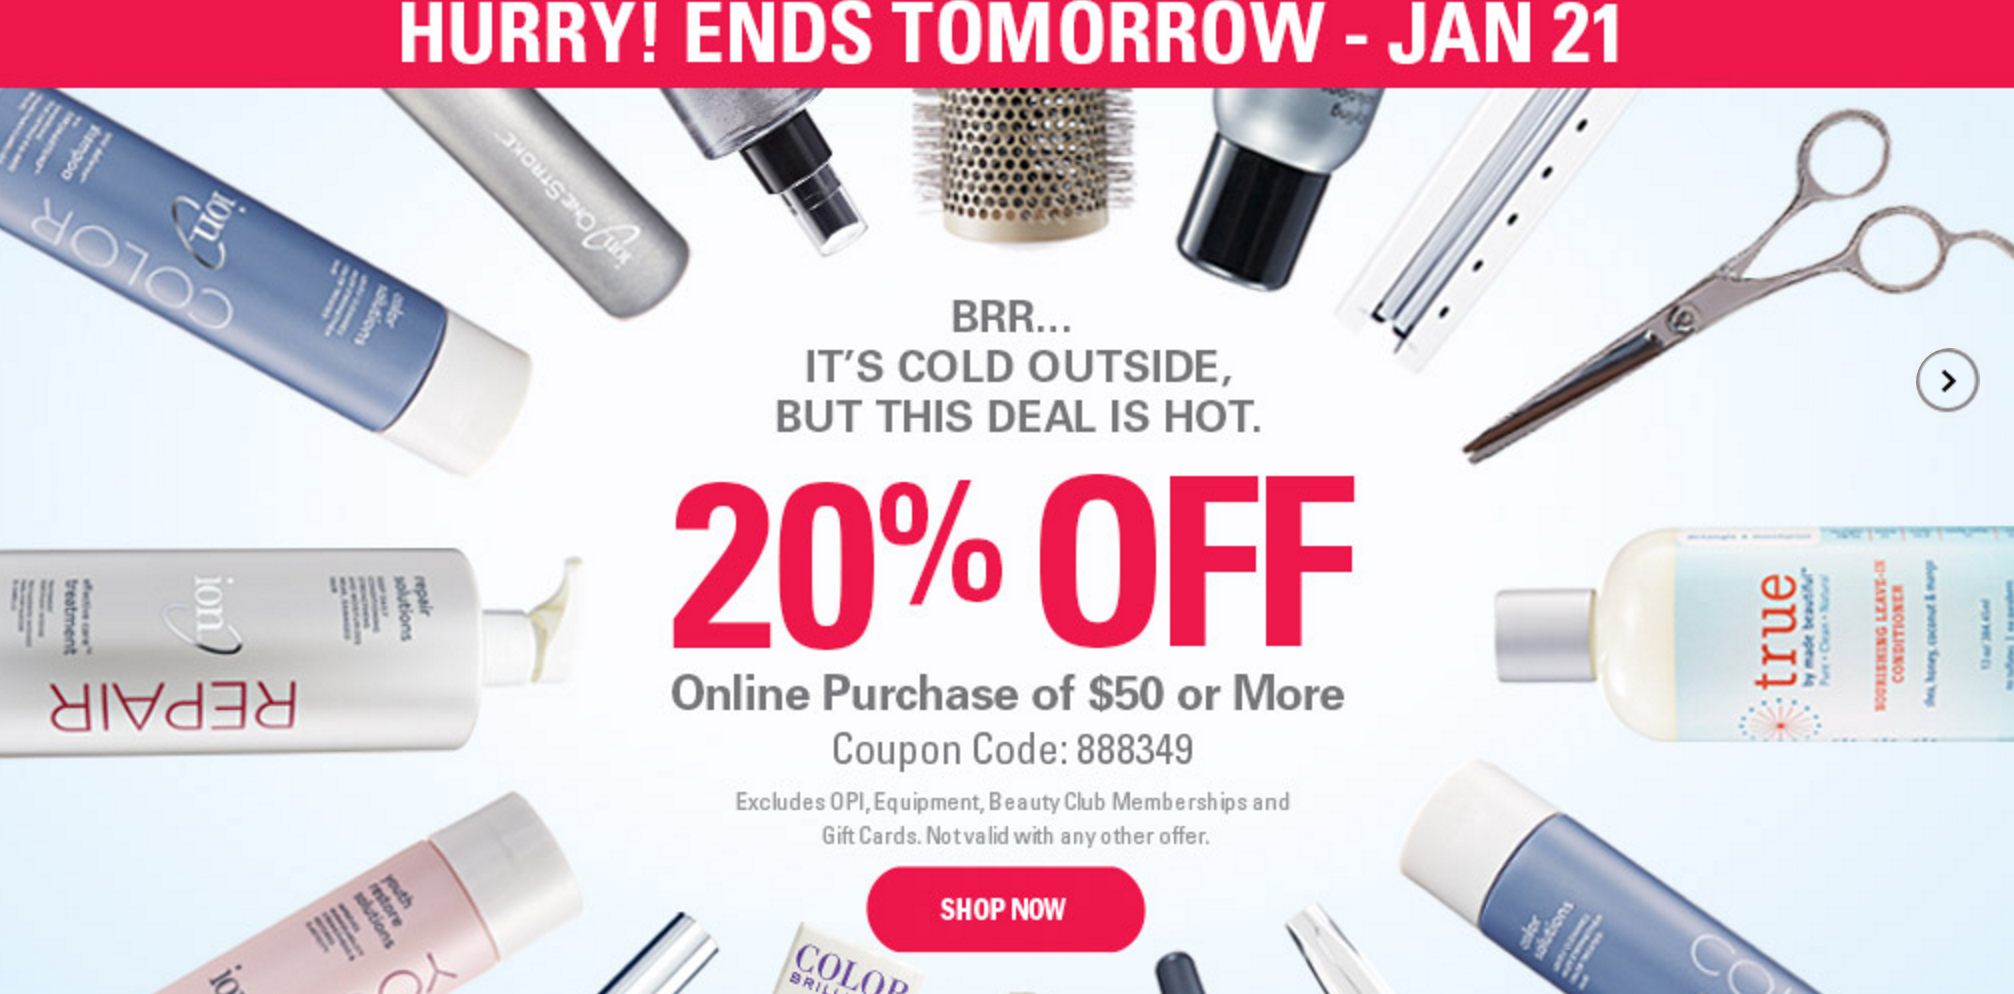 Sally Beauty: 20% Purchase Of $50 Or More!